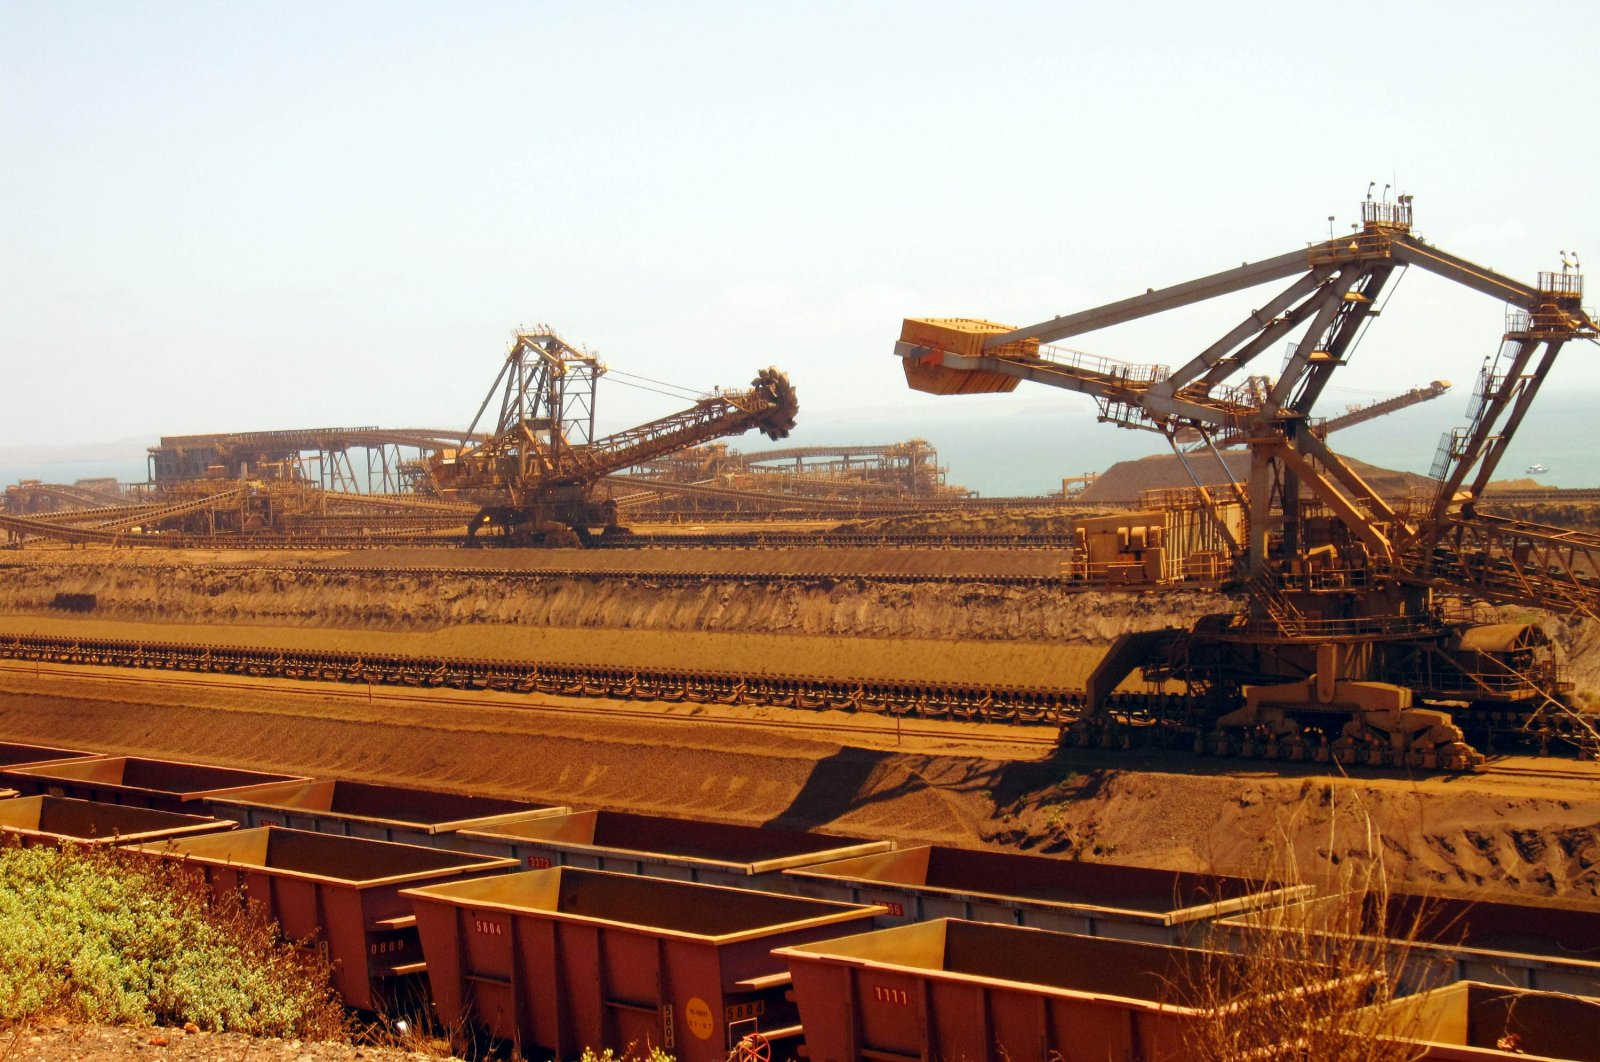 This file photo shows remote-controlled stackers and reclaimers moving iron ore to rail cars at Rio Tinto's Port Dampier operations in Western Australia's Pilbara region, March 4, 2010. (AFP Photo)